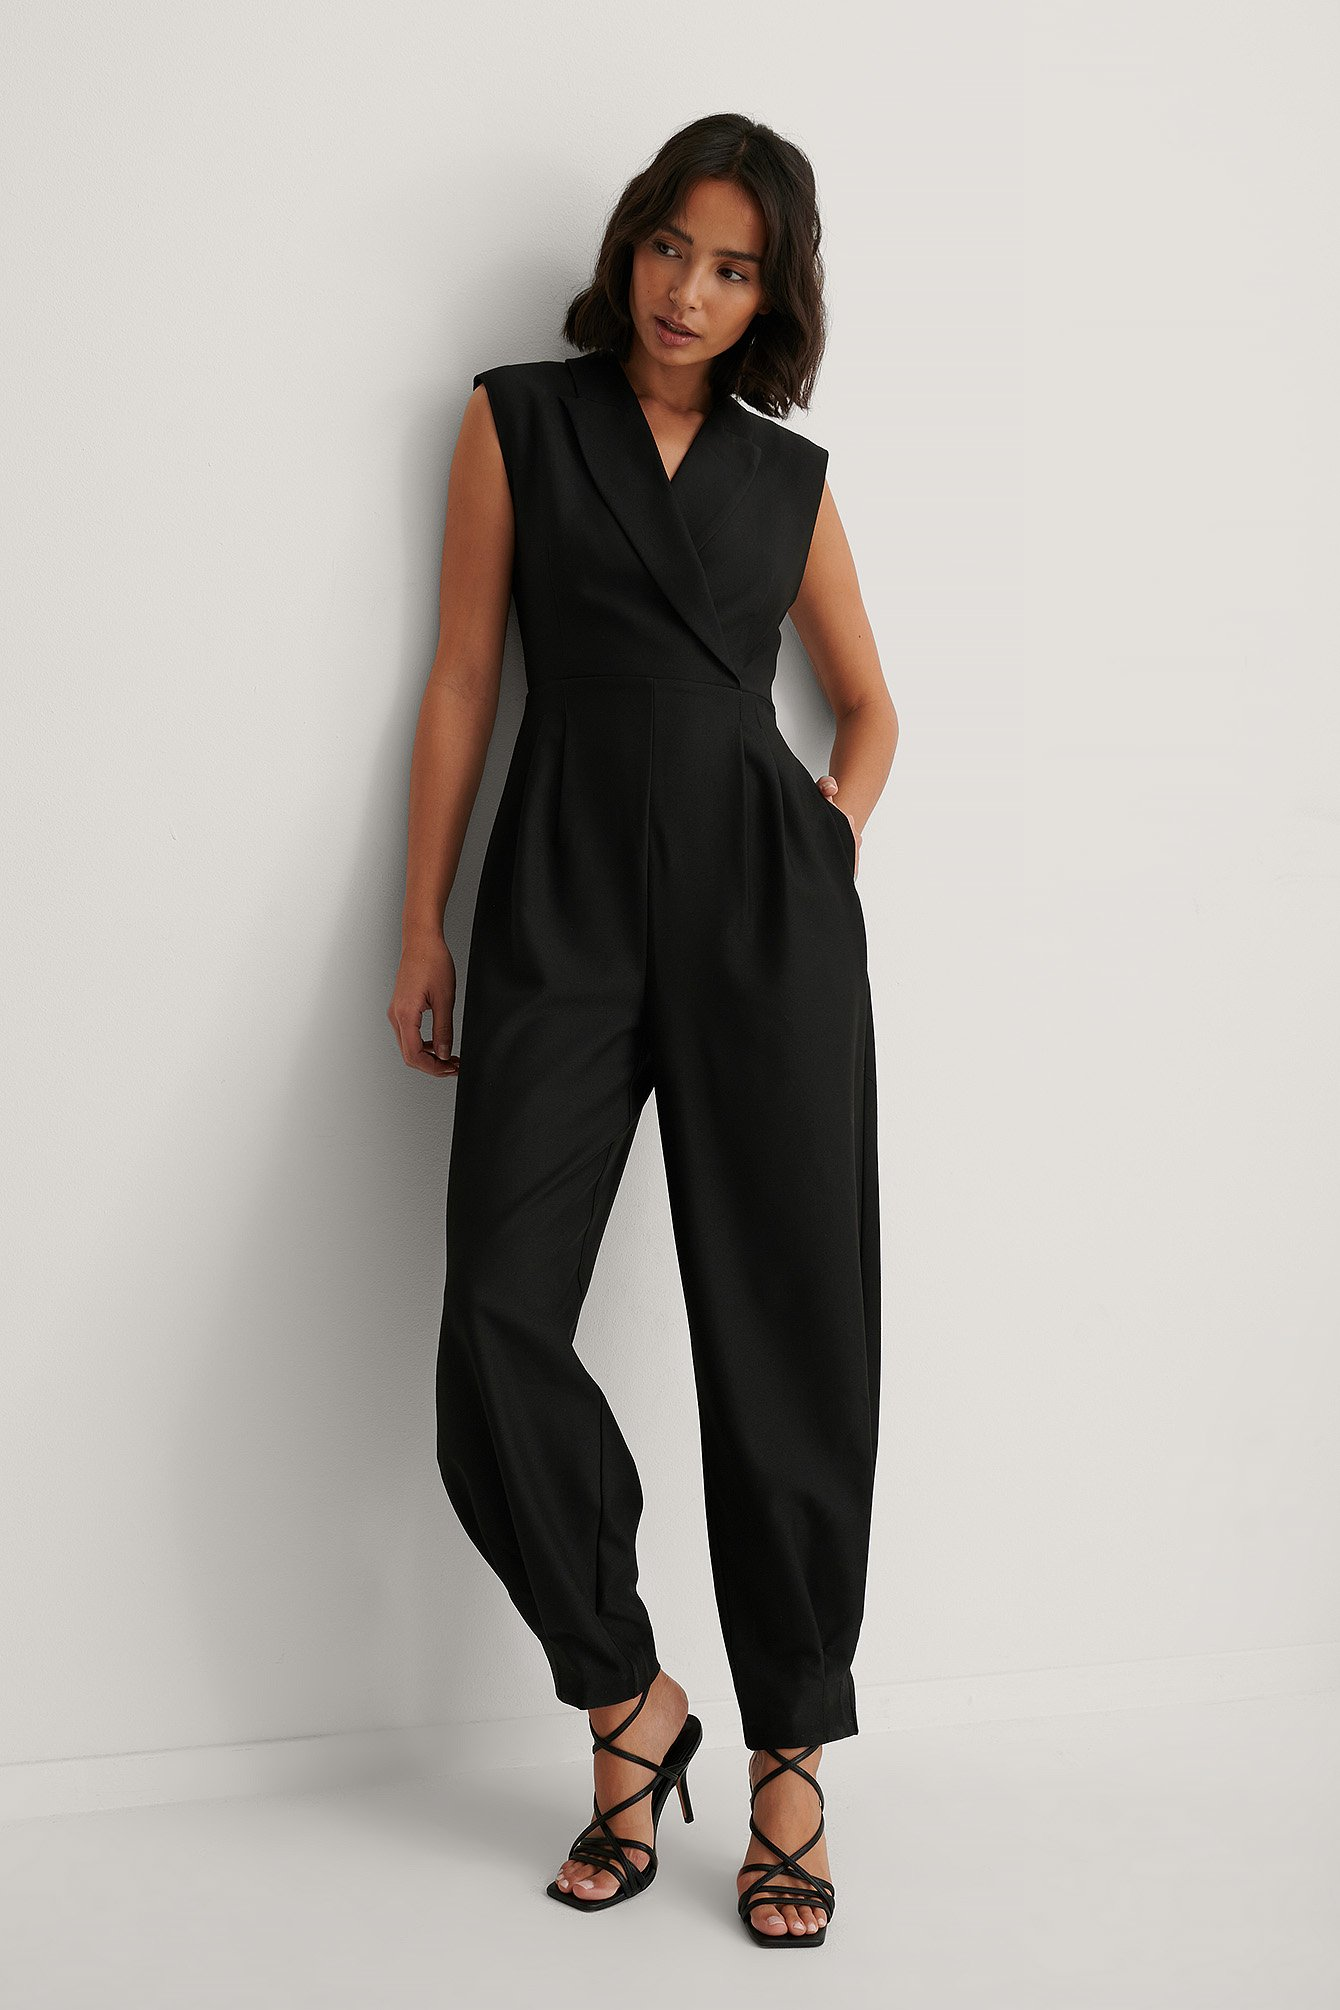 Marked Shoulder Jumpsuit Outfit.